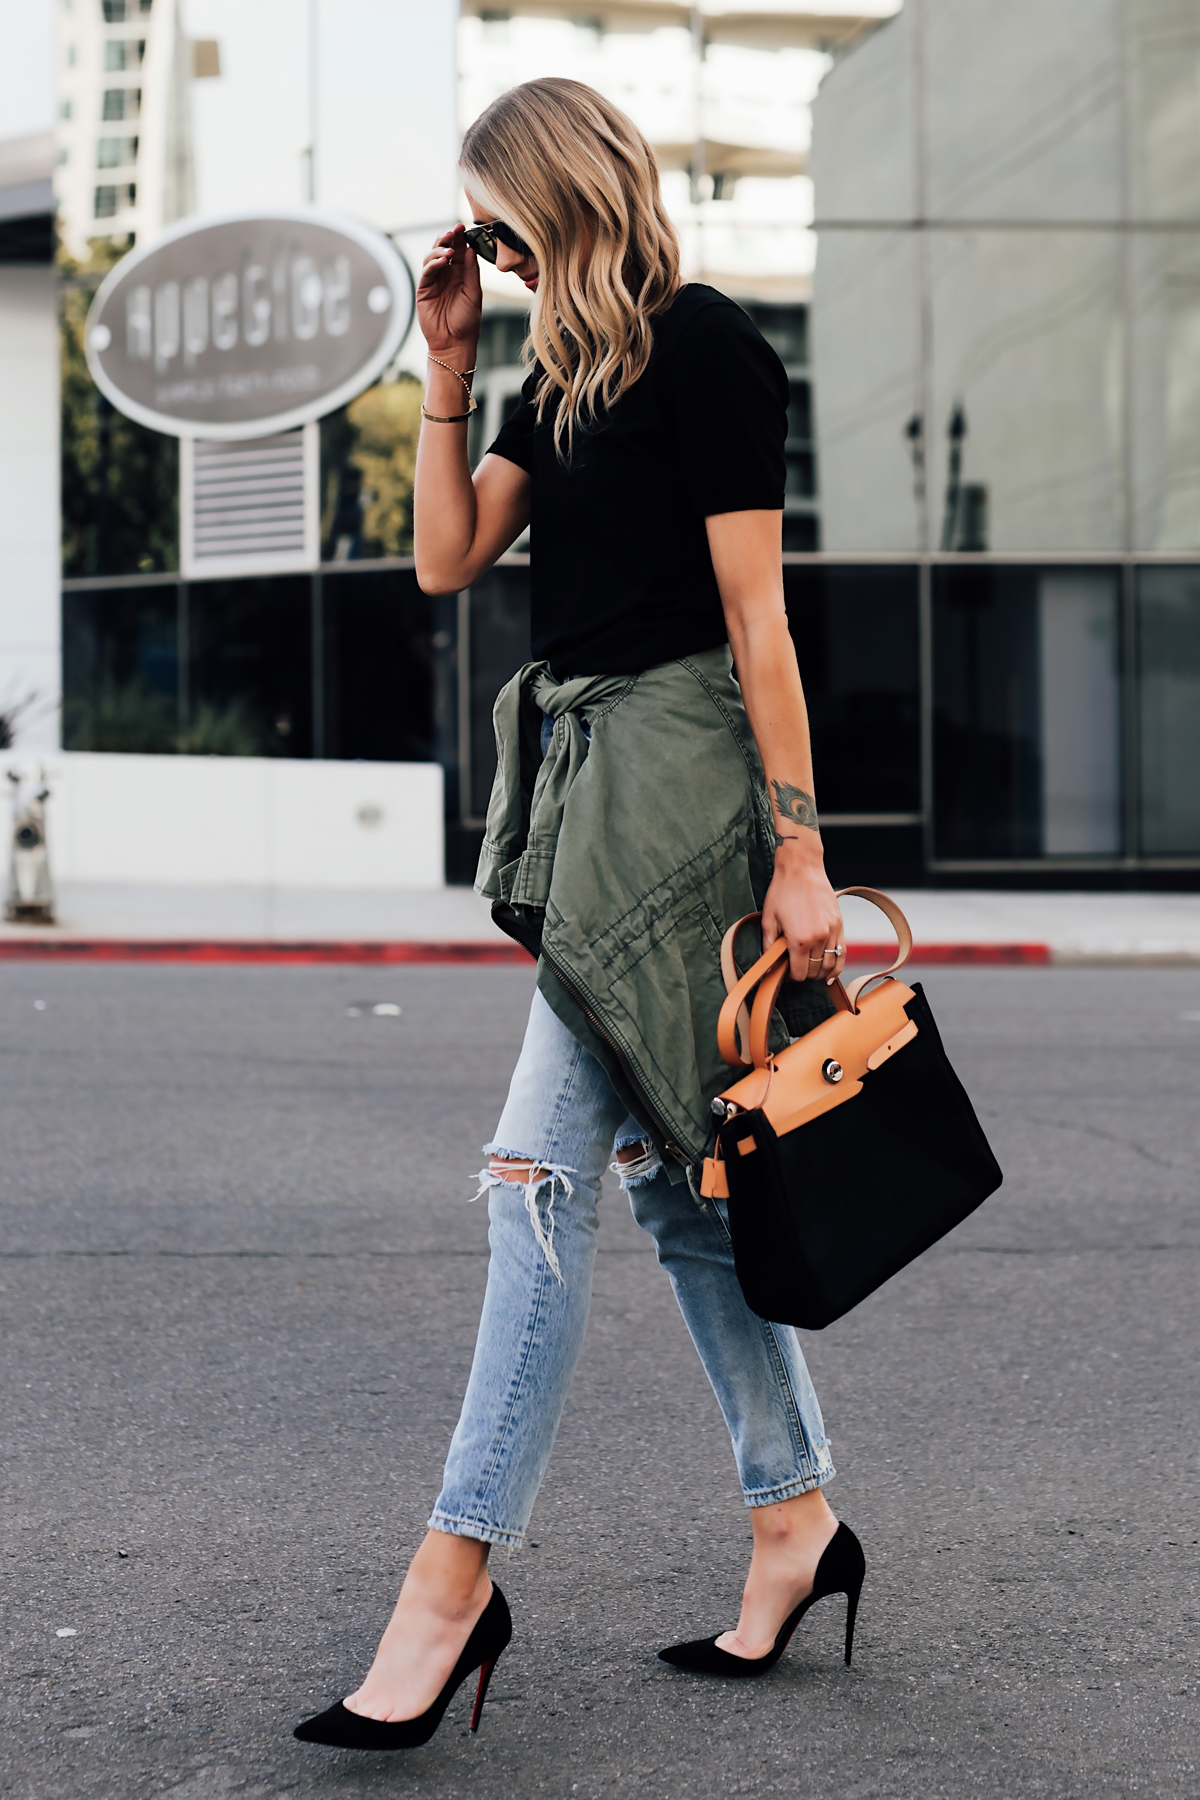 Blonde Woman Wearing Short Sleeve Black Top Denim Ripped Skinny Jeans Black Pumps Green Utility Jacket Vintage Hermes Herbag Black Tan Handbag Fashion Jackson San Diego Fashion Blogger Street Style